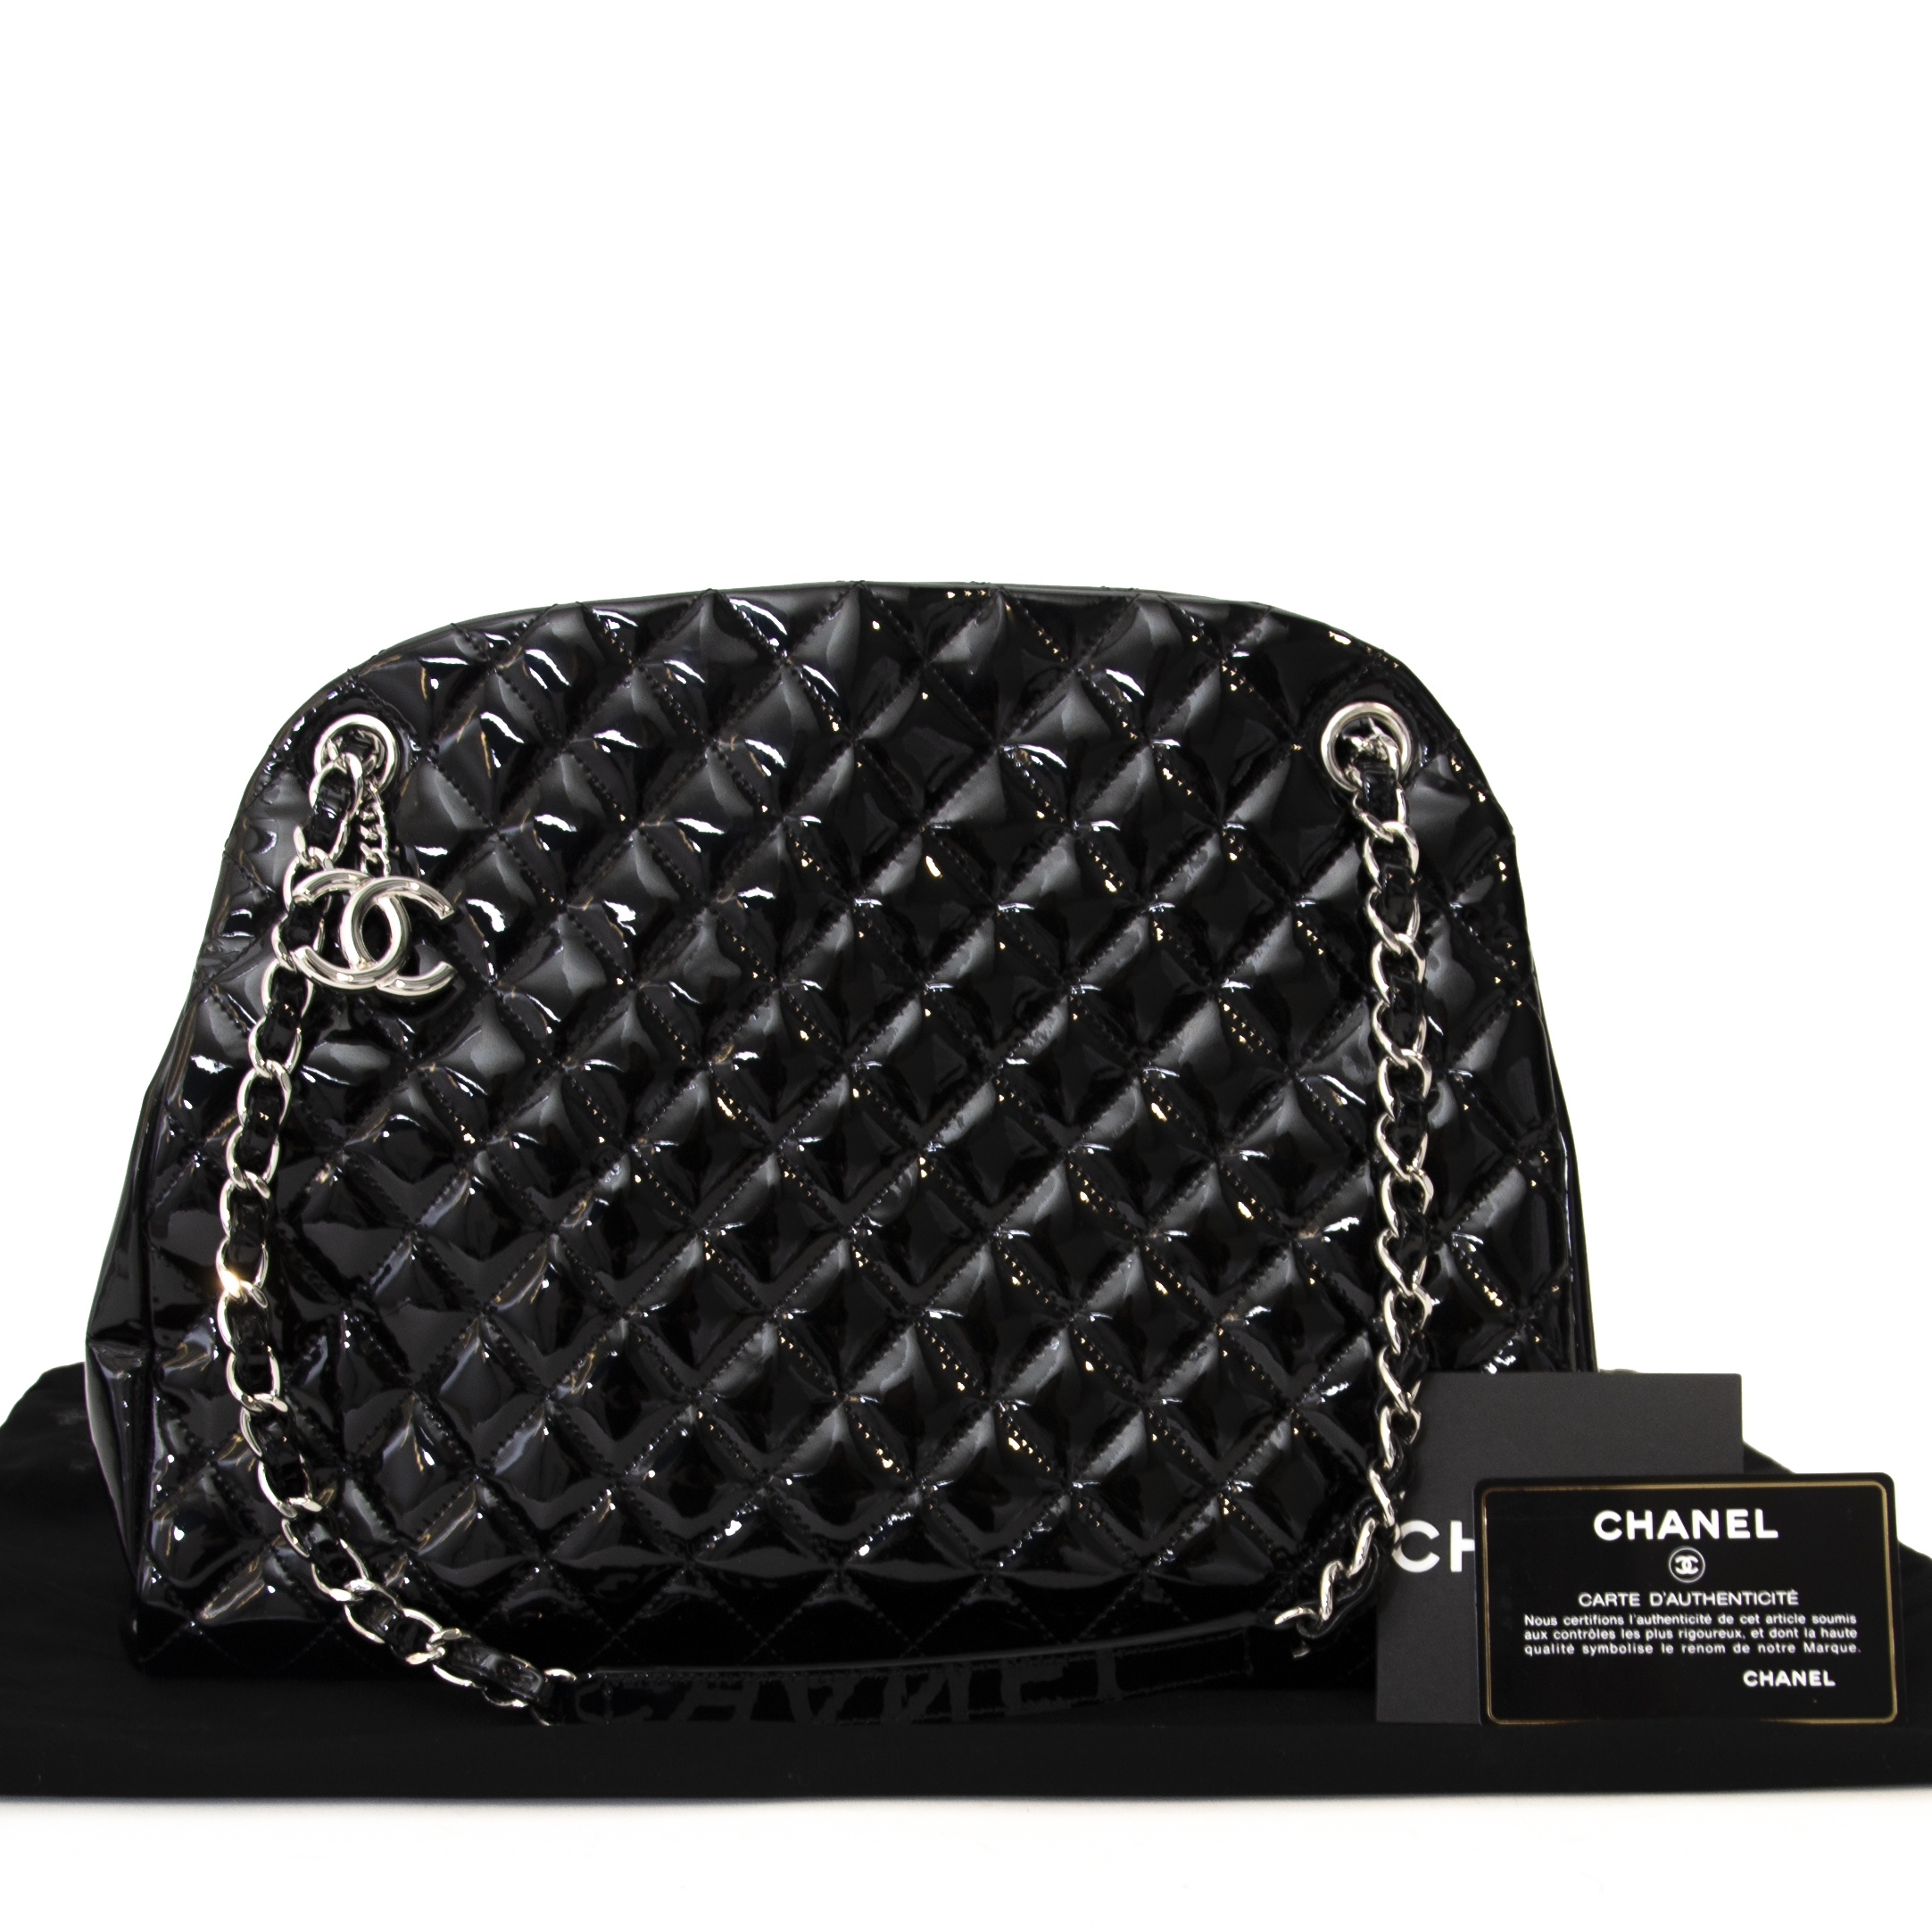 ea6efd10727a Fair Chanel Black Patent Leather Quilted Bag. Chanel tweedehands tas  authentiek bij LabelLOV. Chanel in